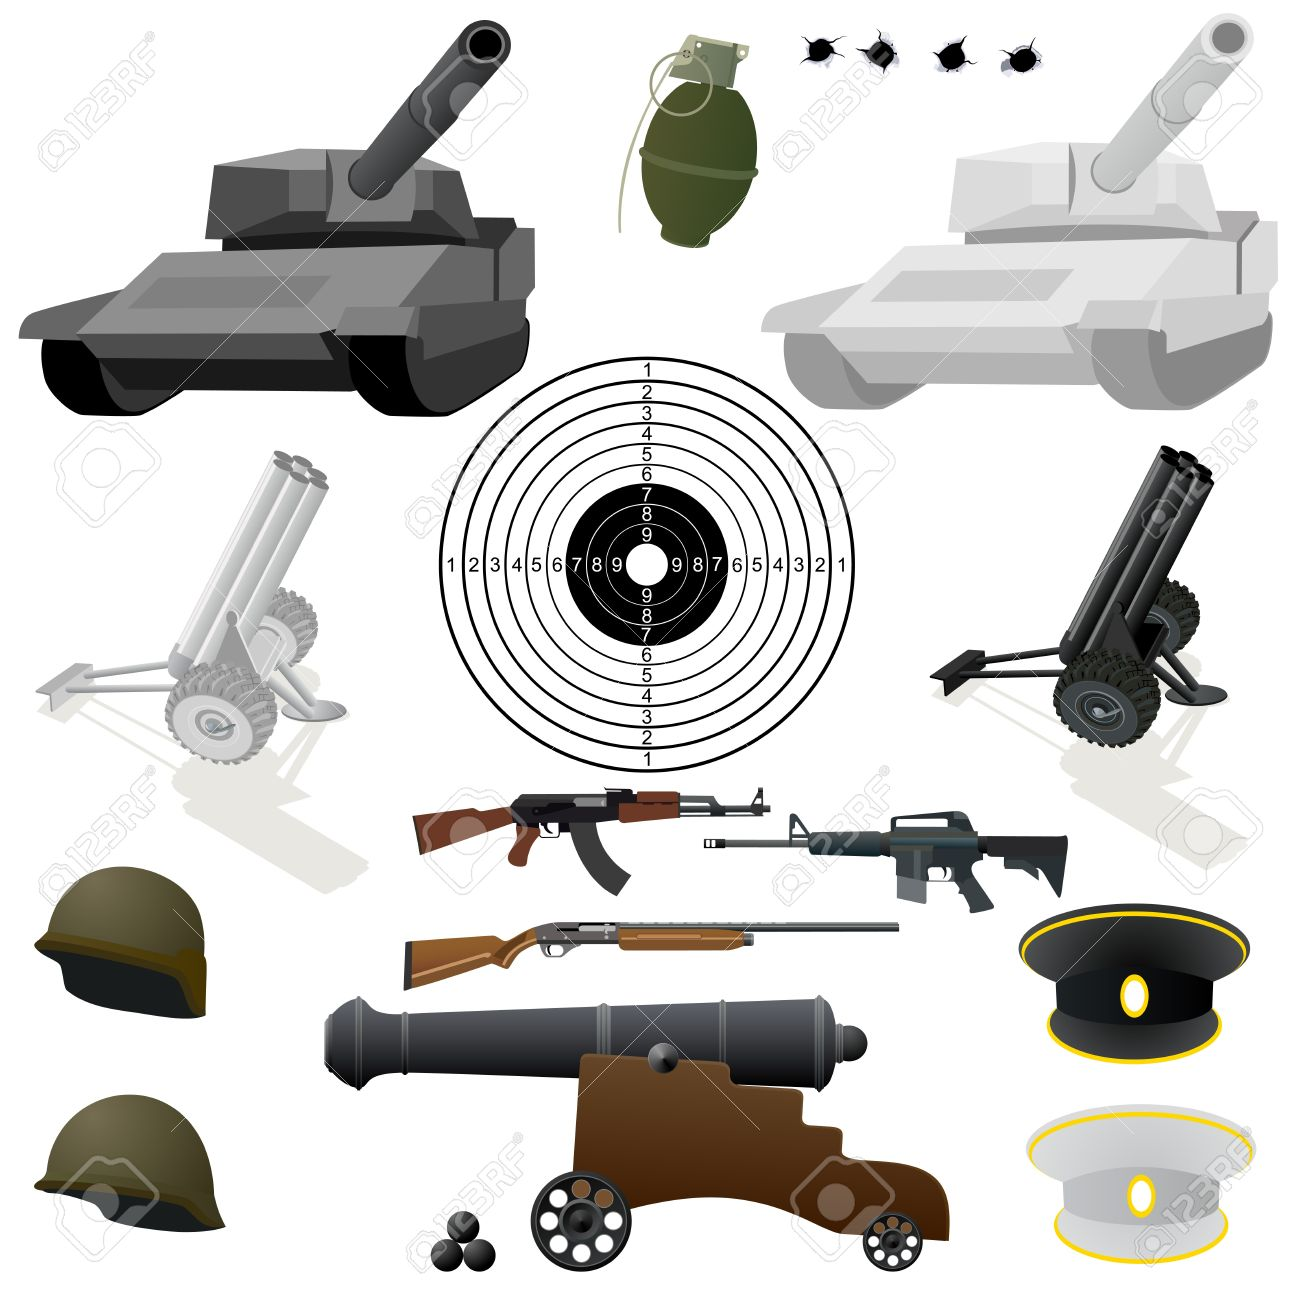 Military Equipment, Small Arms And Military Uniforms. Illustration.